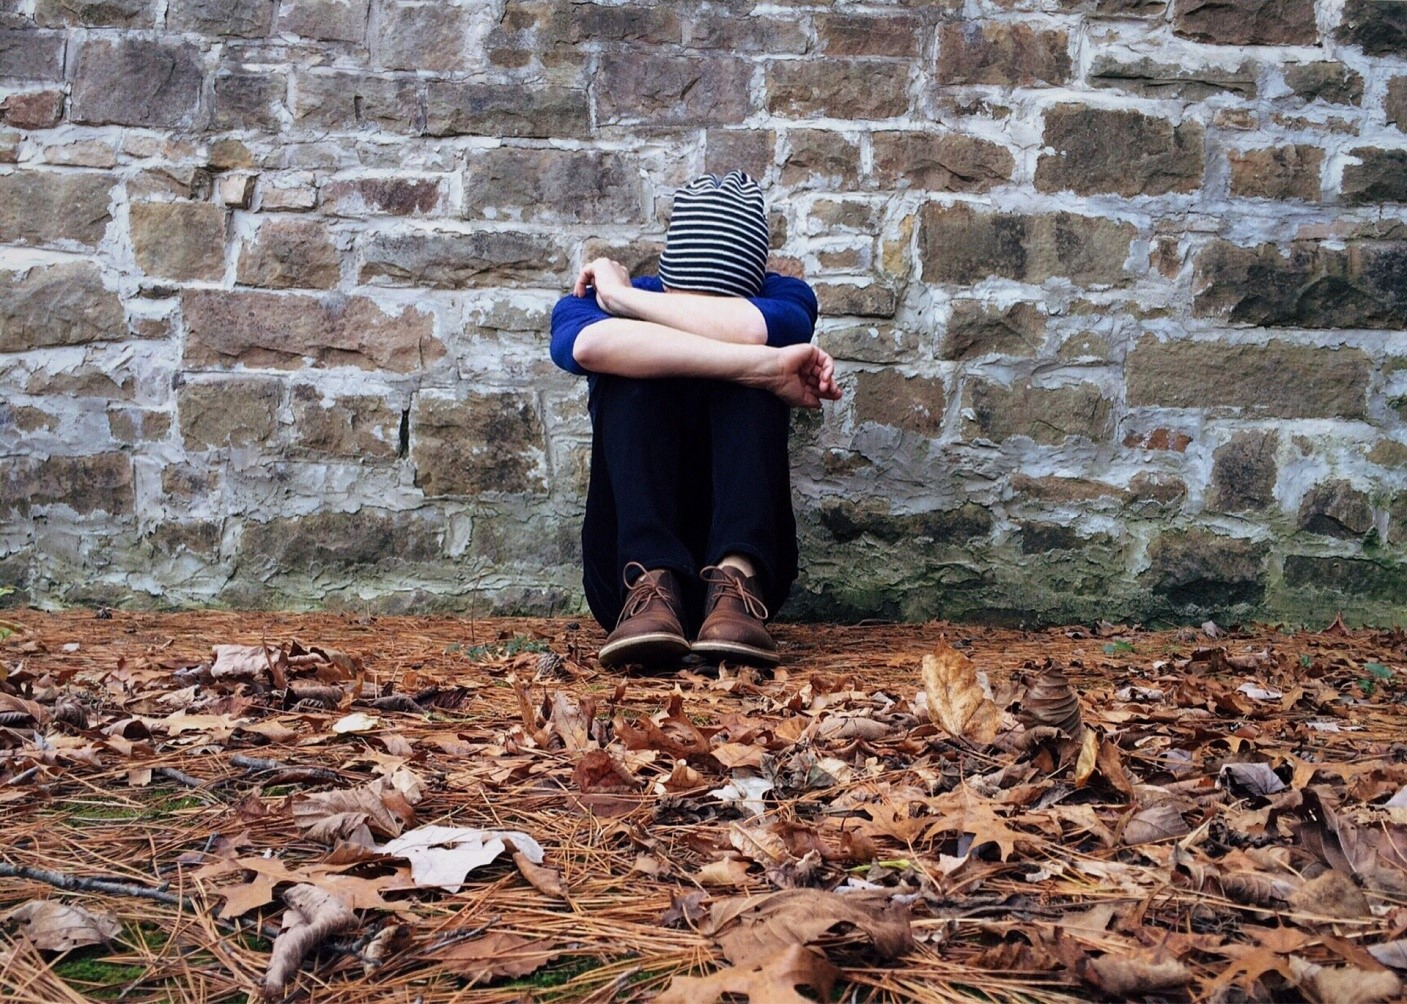 How Loneliness Can Lead to Drug Addiction